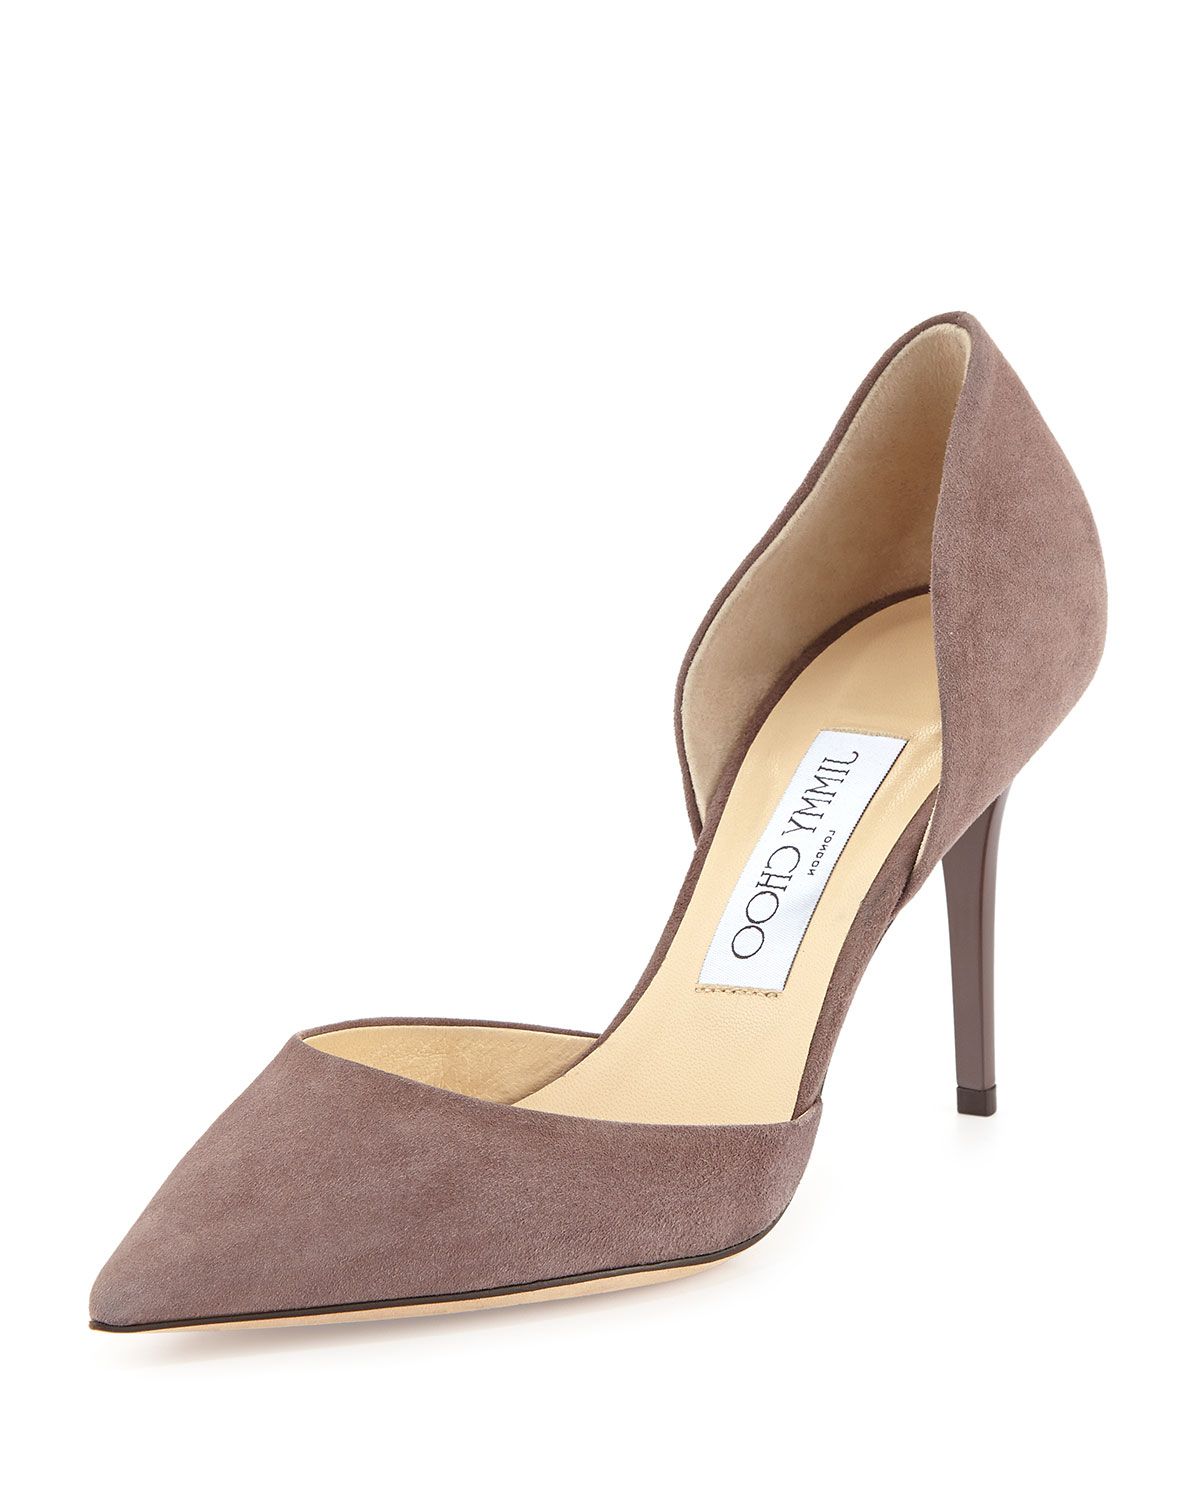 jimmy choo addison suede d orsay pump neiman marcus rh neimanmarcus com  jimmy choo addison 80 leather d'orsay pumps